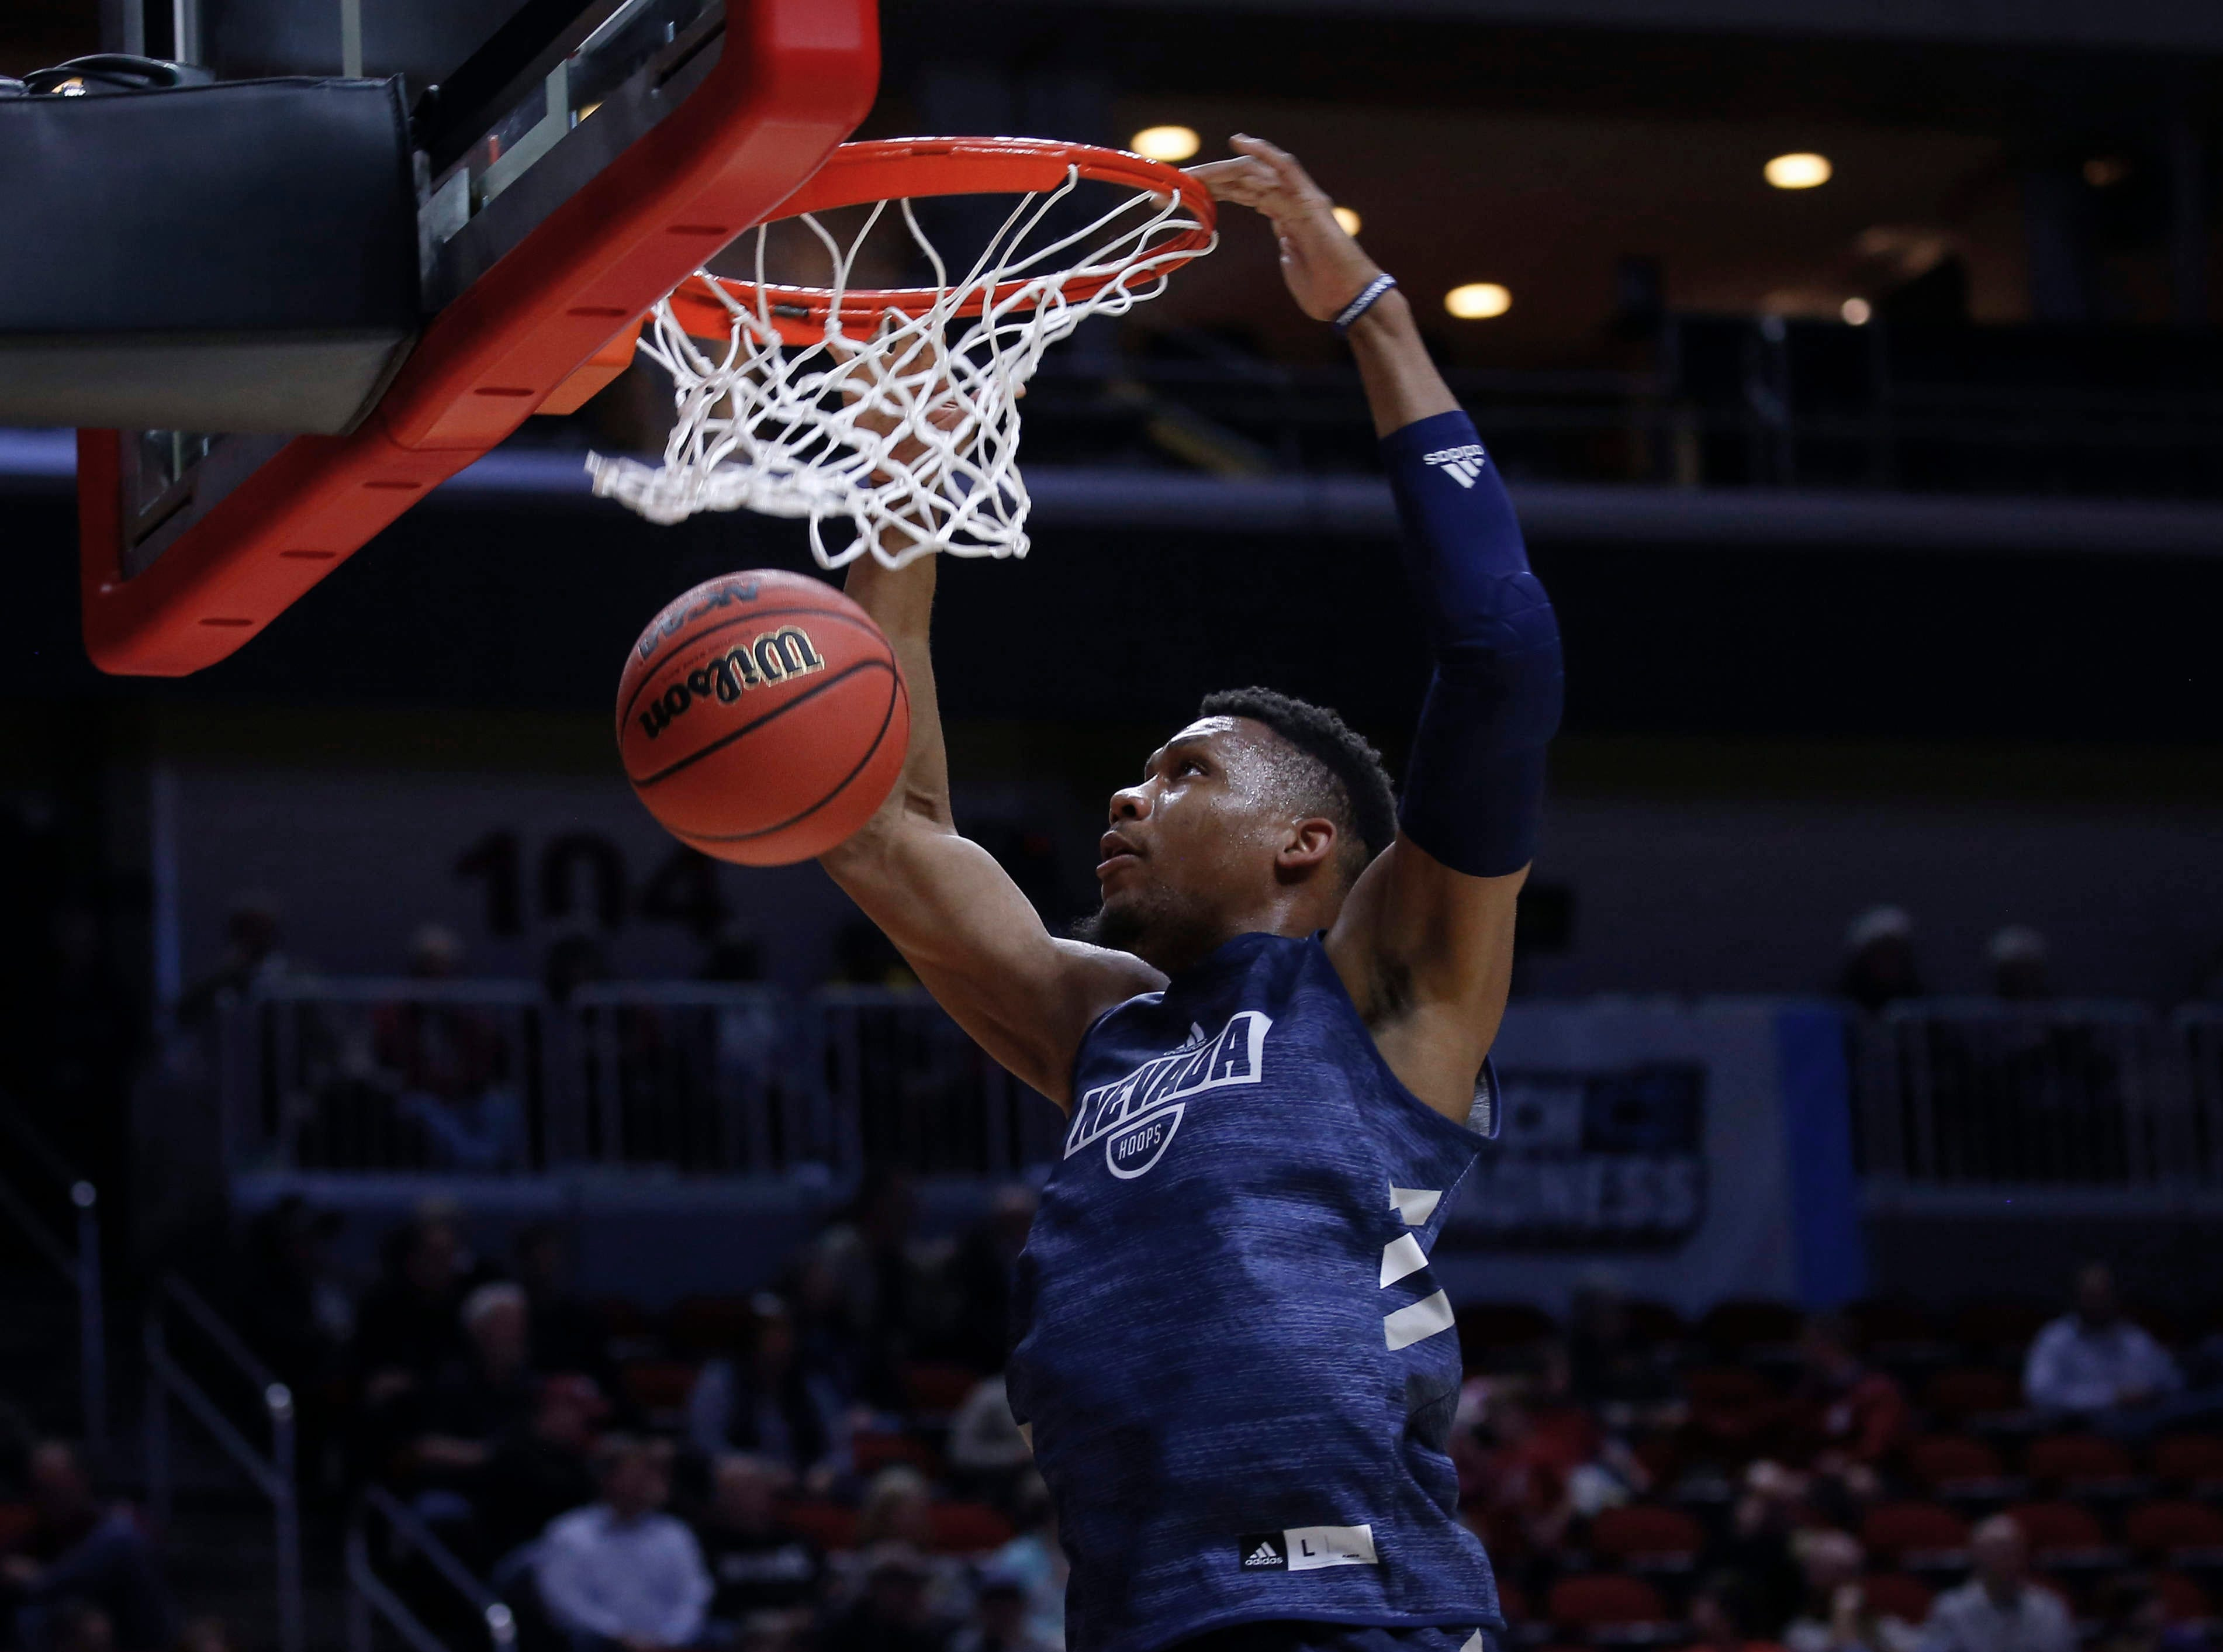 Nevada freshman Tre'Shawn Thurman dunks the ball during open practice on Wednesday, March 20, 2019, at Wells Fargo Arena in Des Moines, Iowa.